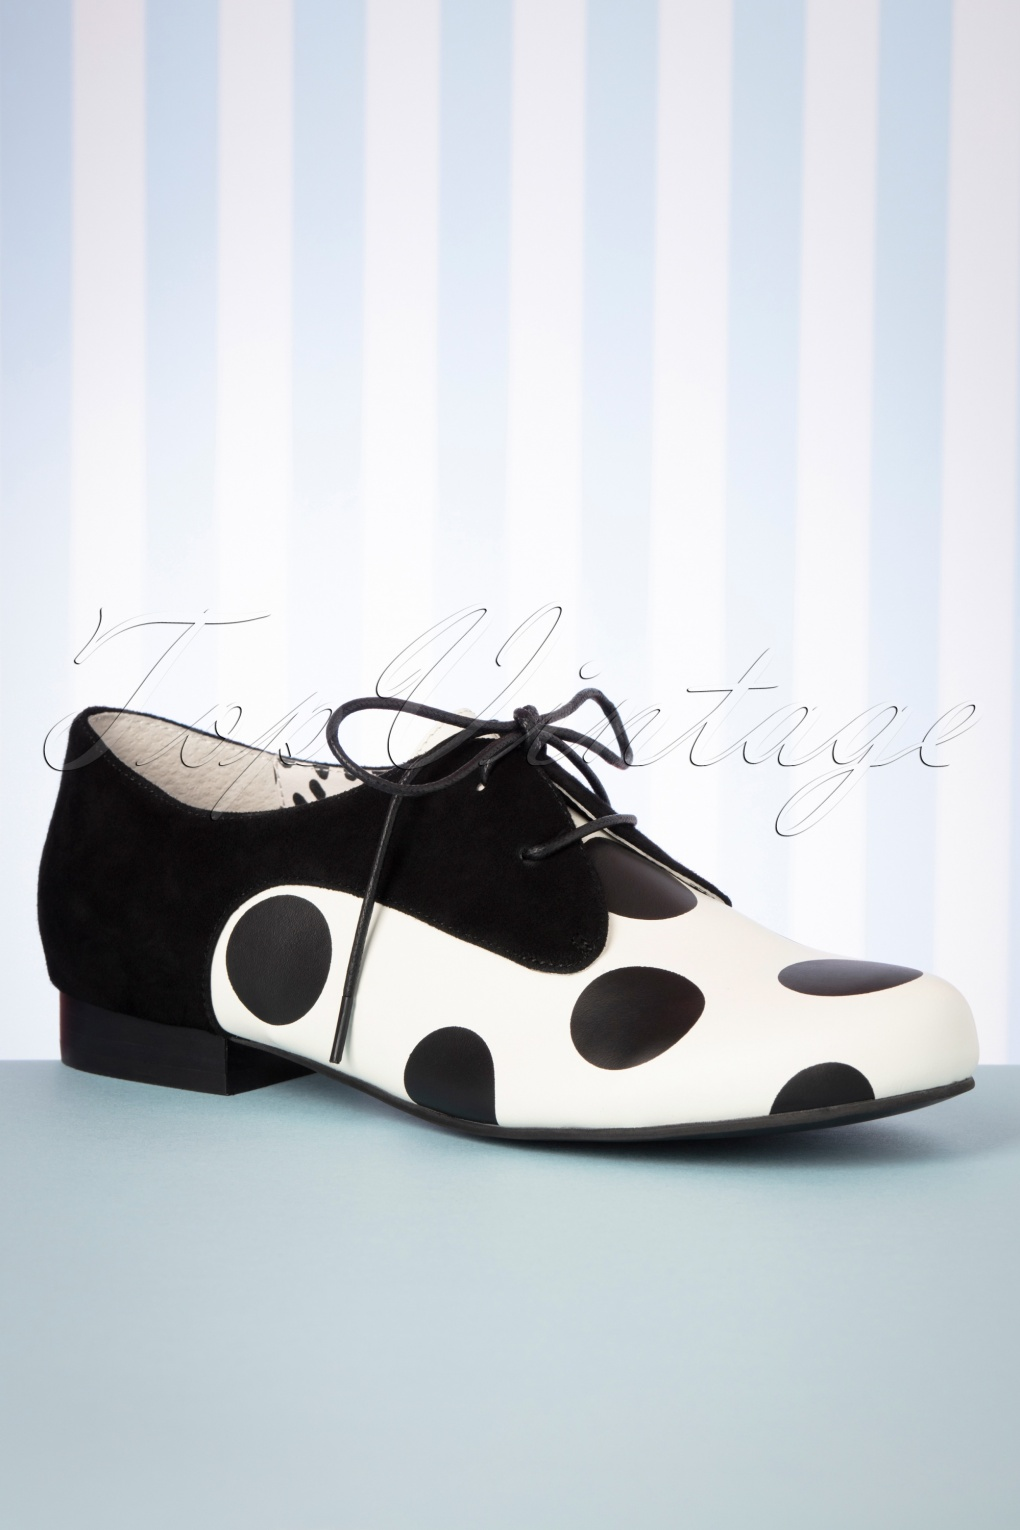 60s Dresses & 60s Style Dresses UK 60s Penny Polkadot Shoes in Black and White £134.30 AT vintagedancer.com